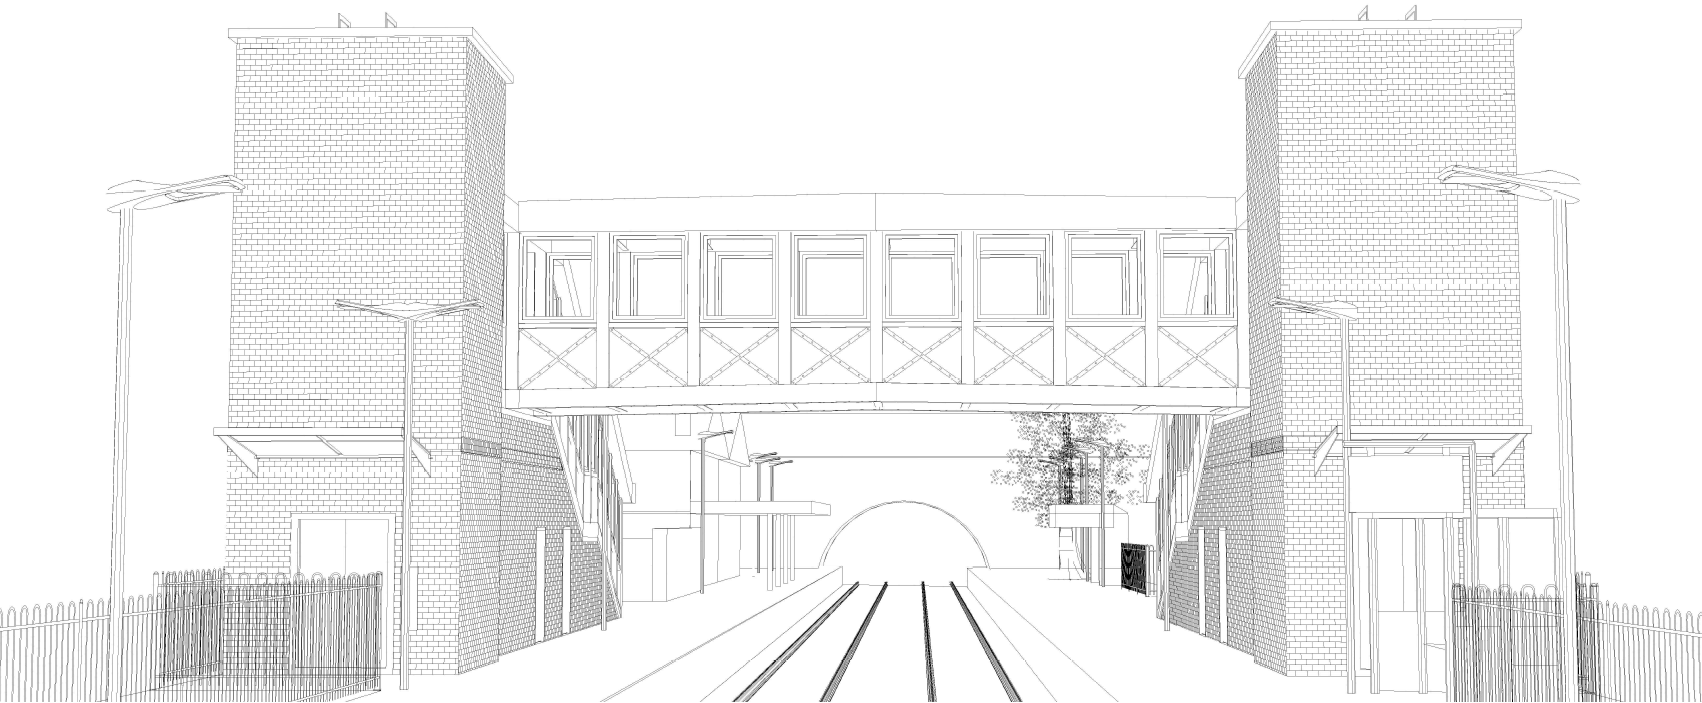 Architect's line drawing of Ewell West Bridge